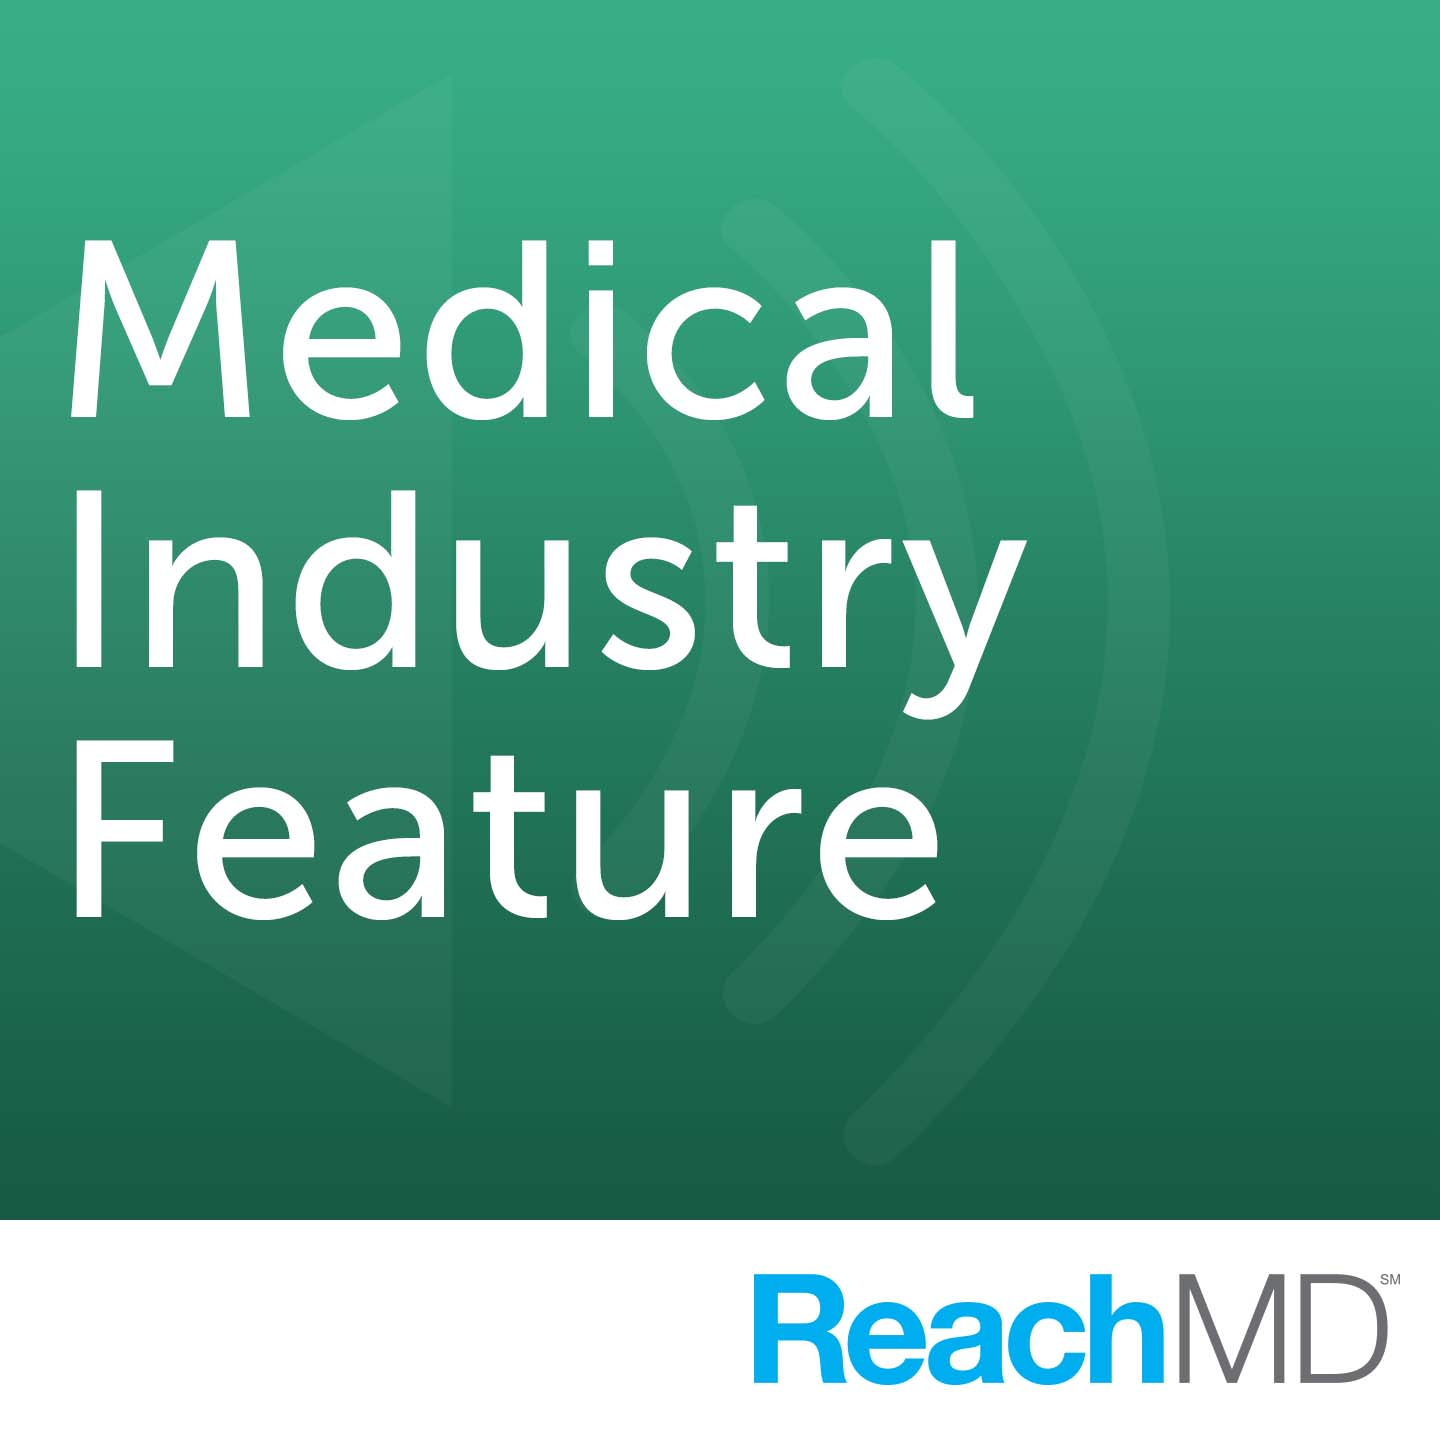 Medical Industry Feature